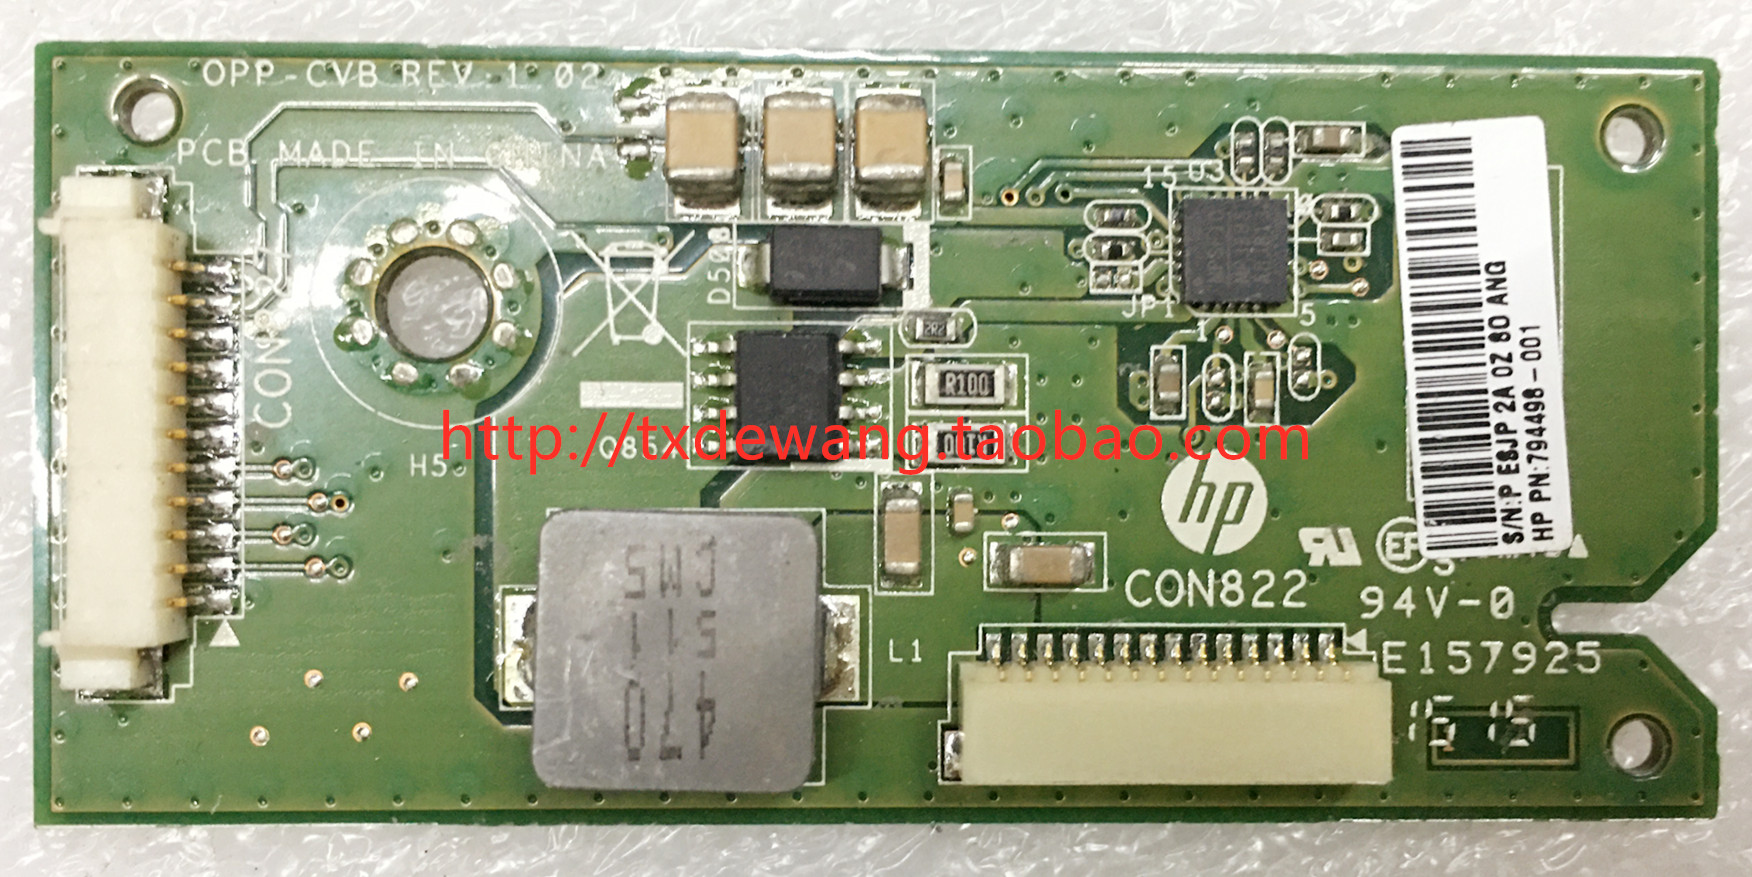 HP All-in-One 20 r122d OPP-CVB REV:1.02 boost board